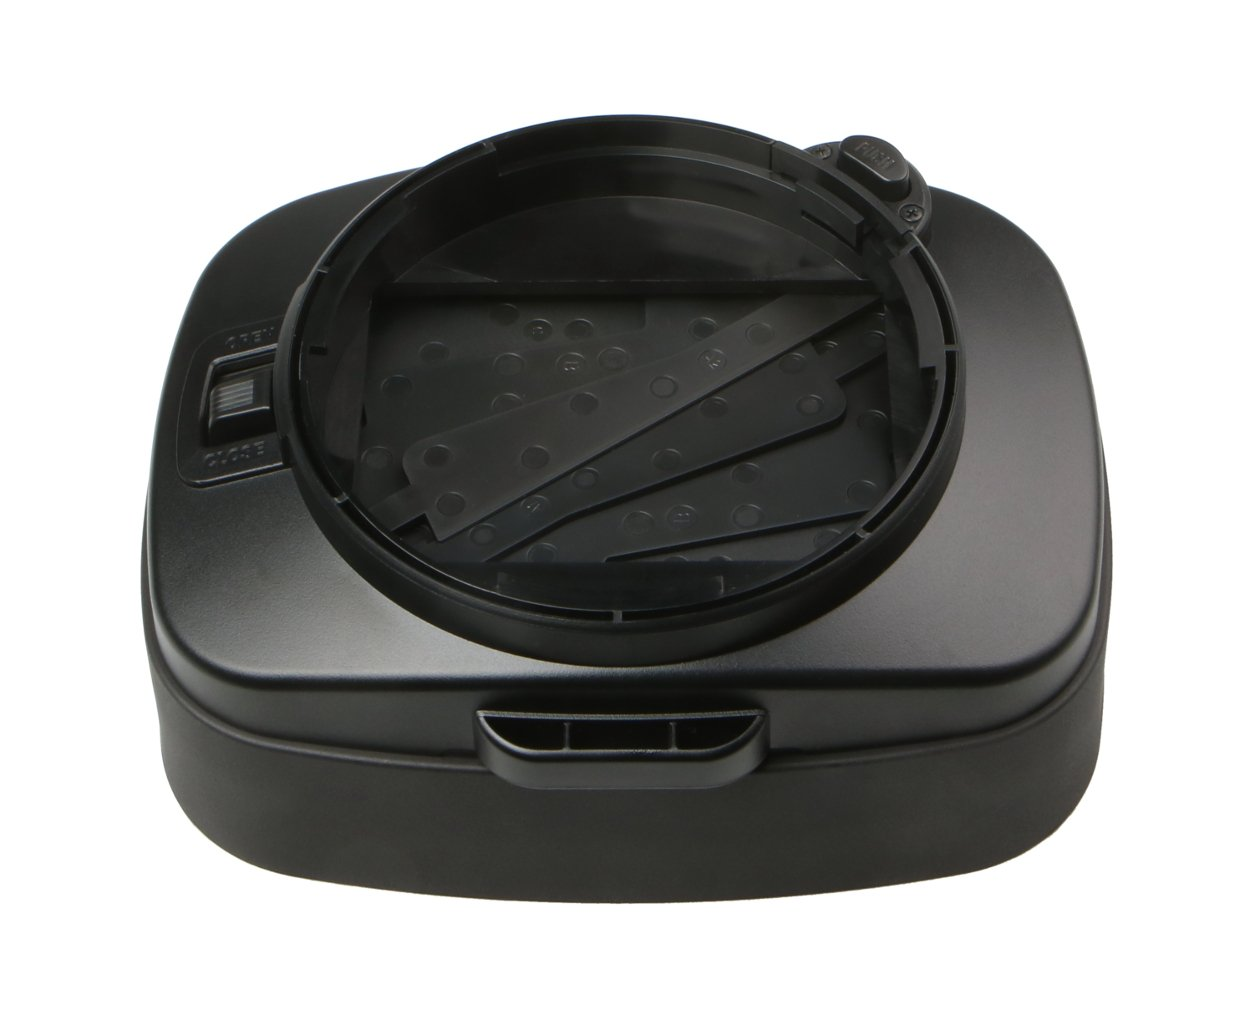 Lens Hood for GY-HM850U